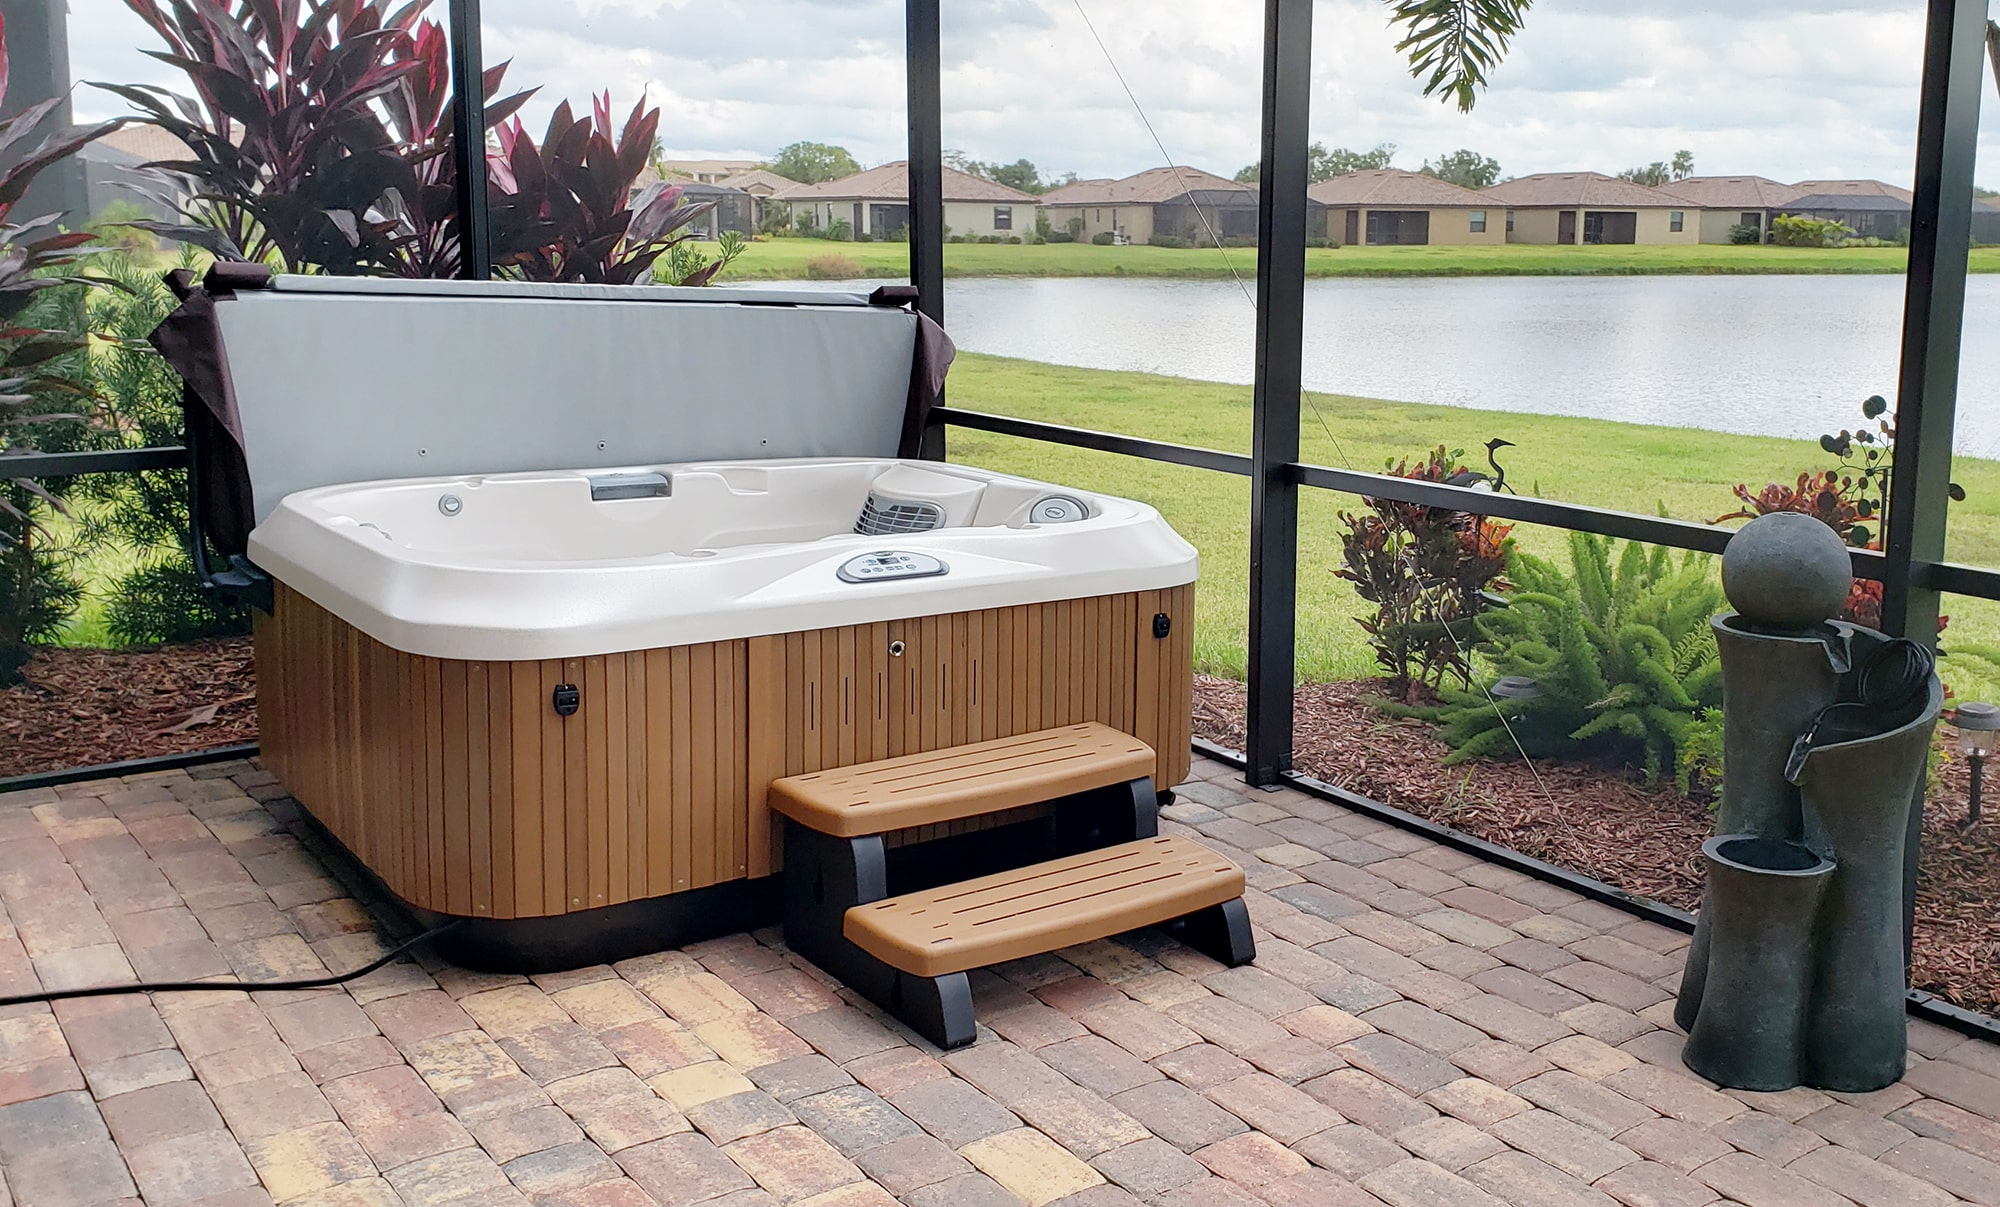 J-315 Hot Tub in Sarasota